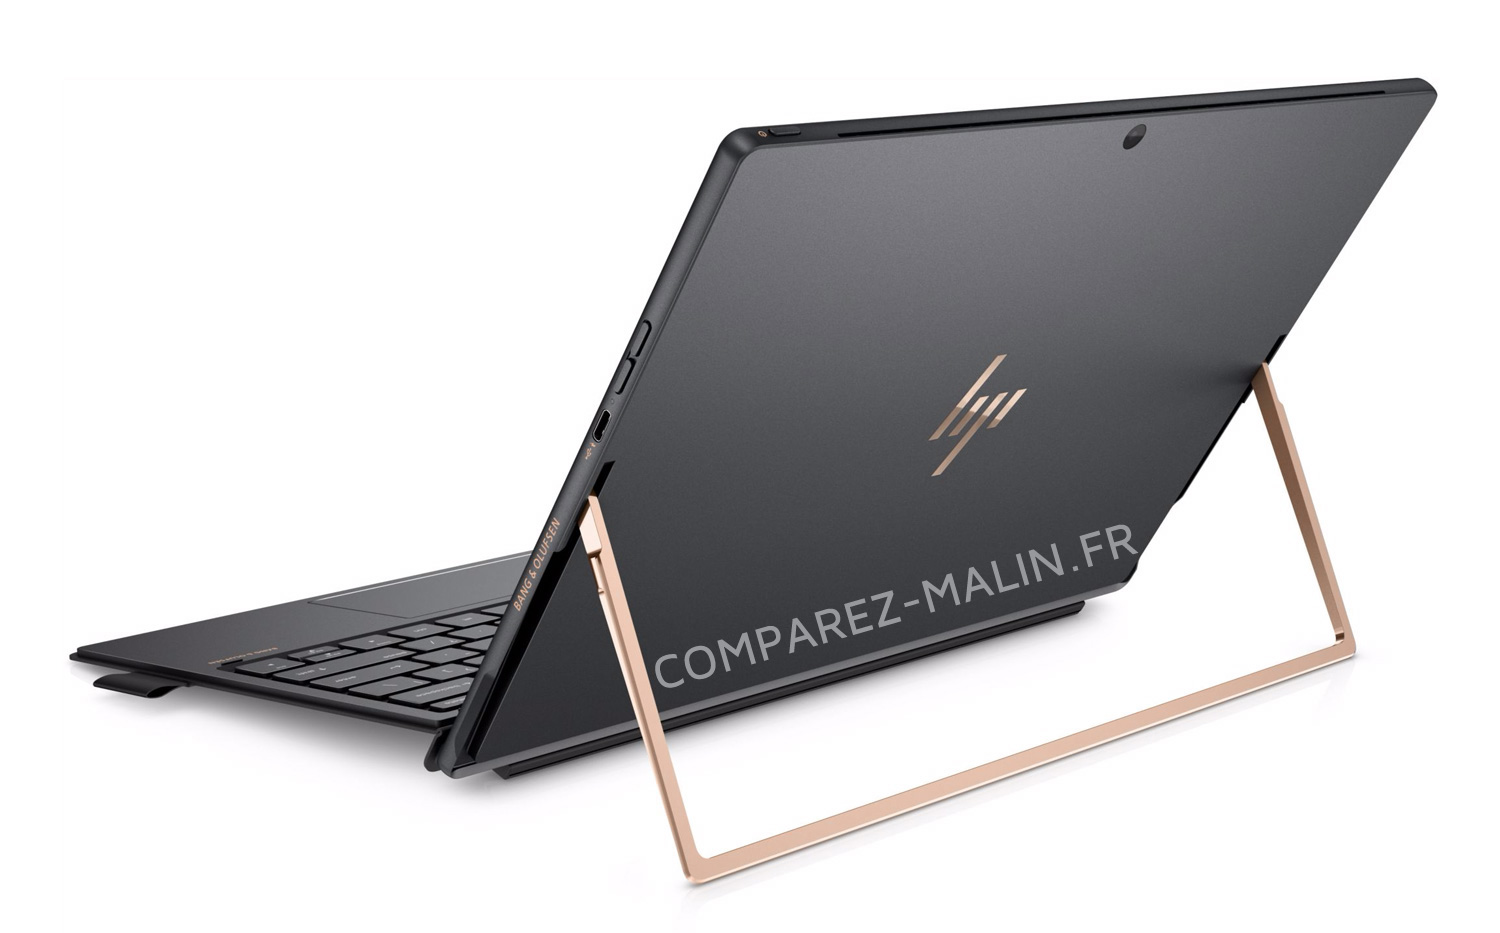 Hp Spectre X2 12 2017 Shows In Pictures New Design And